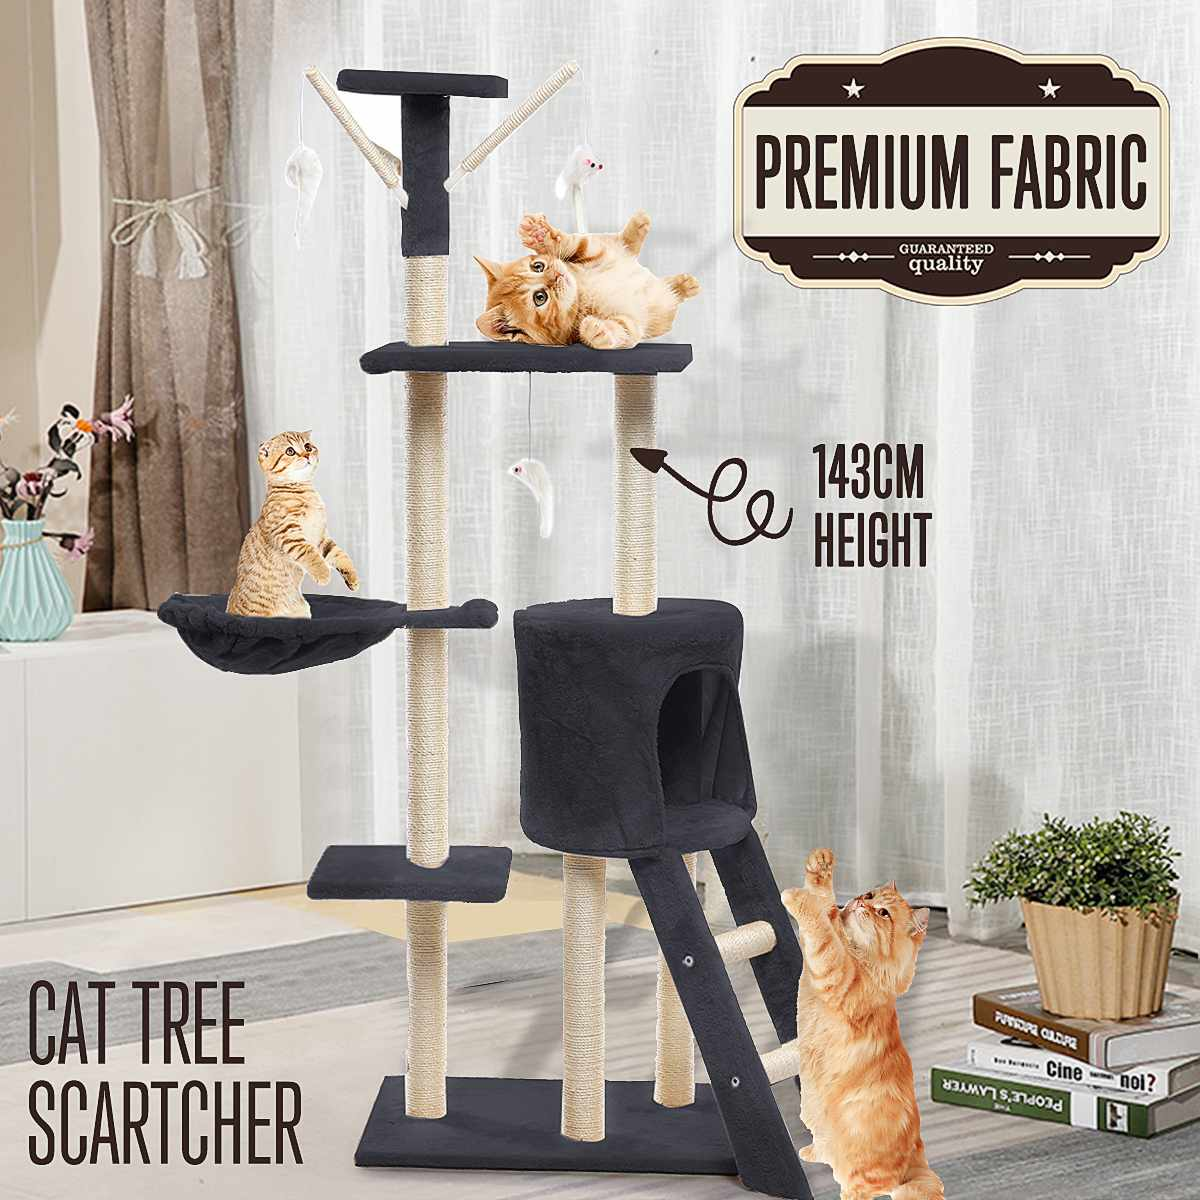 143cm <font><b>Pet</b></font> <font><b>Cat</b></font> <font><b>Tree</b></font> House Condo Toy Scratching Post for <font><b>Cats</b></font> Wood Climbing <font><b>Tree</b></font> <font><b>Cat</b></font> <font><b>Tree</b></font> <font><b>Towers</b></font> Furniture <font><b>Cat</b></font> Playing Toys image